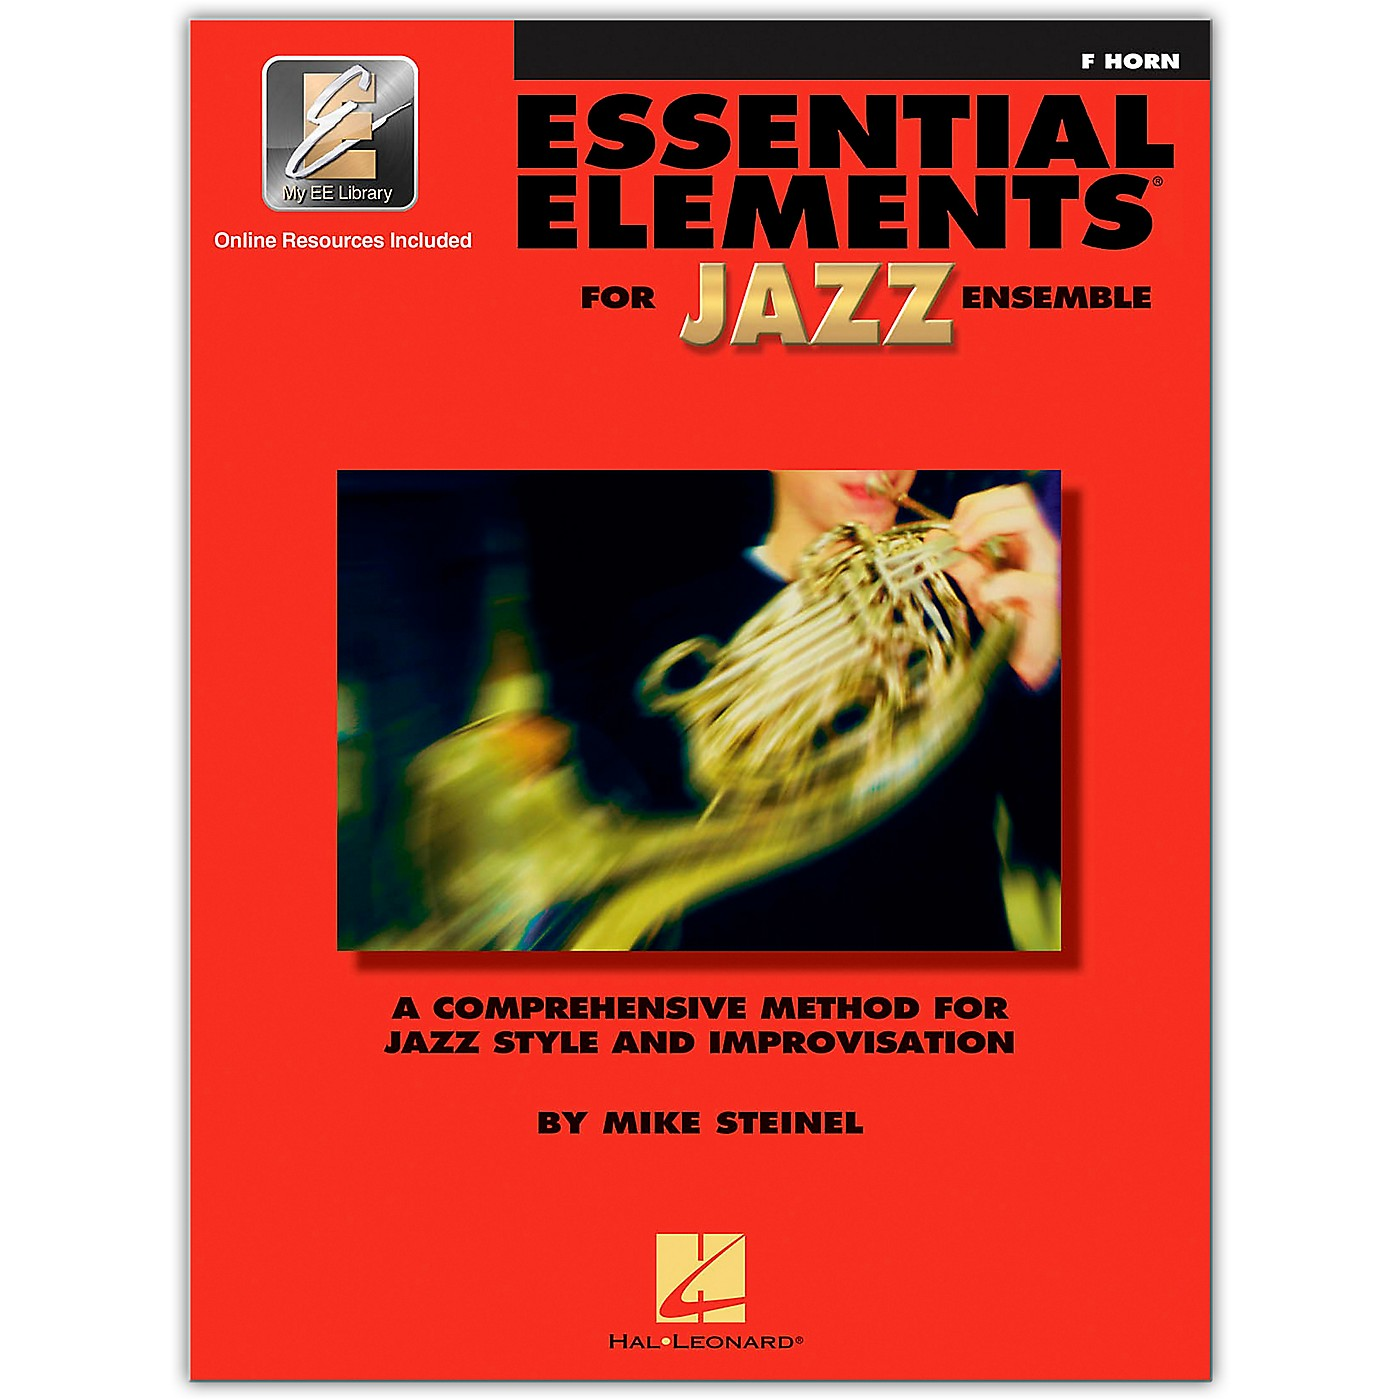 Hal Leonard Essential Elements for Jazz Ensemble - French Horn (Book/Online Audio) thumbnail